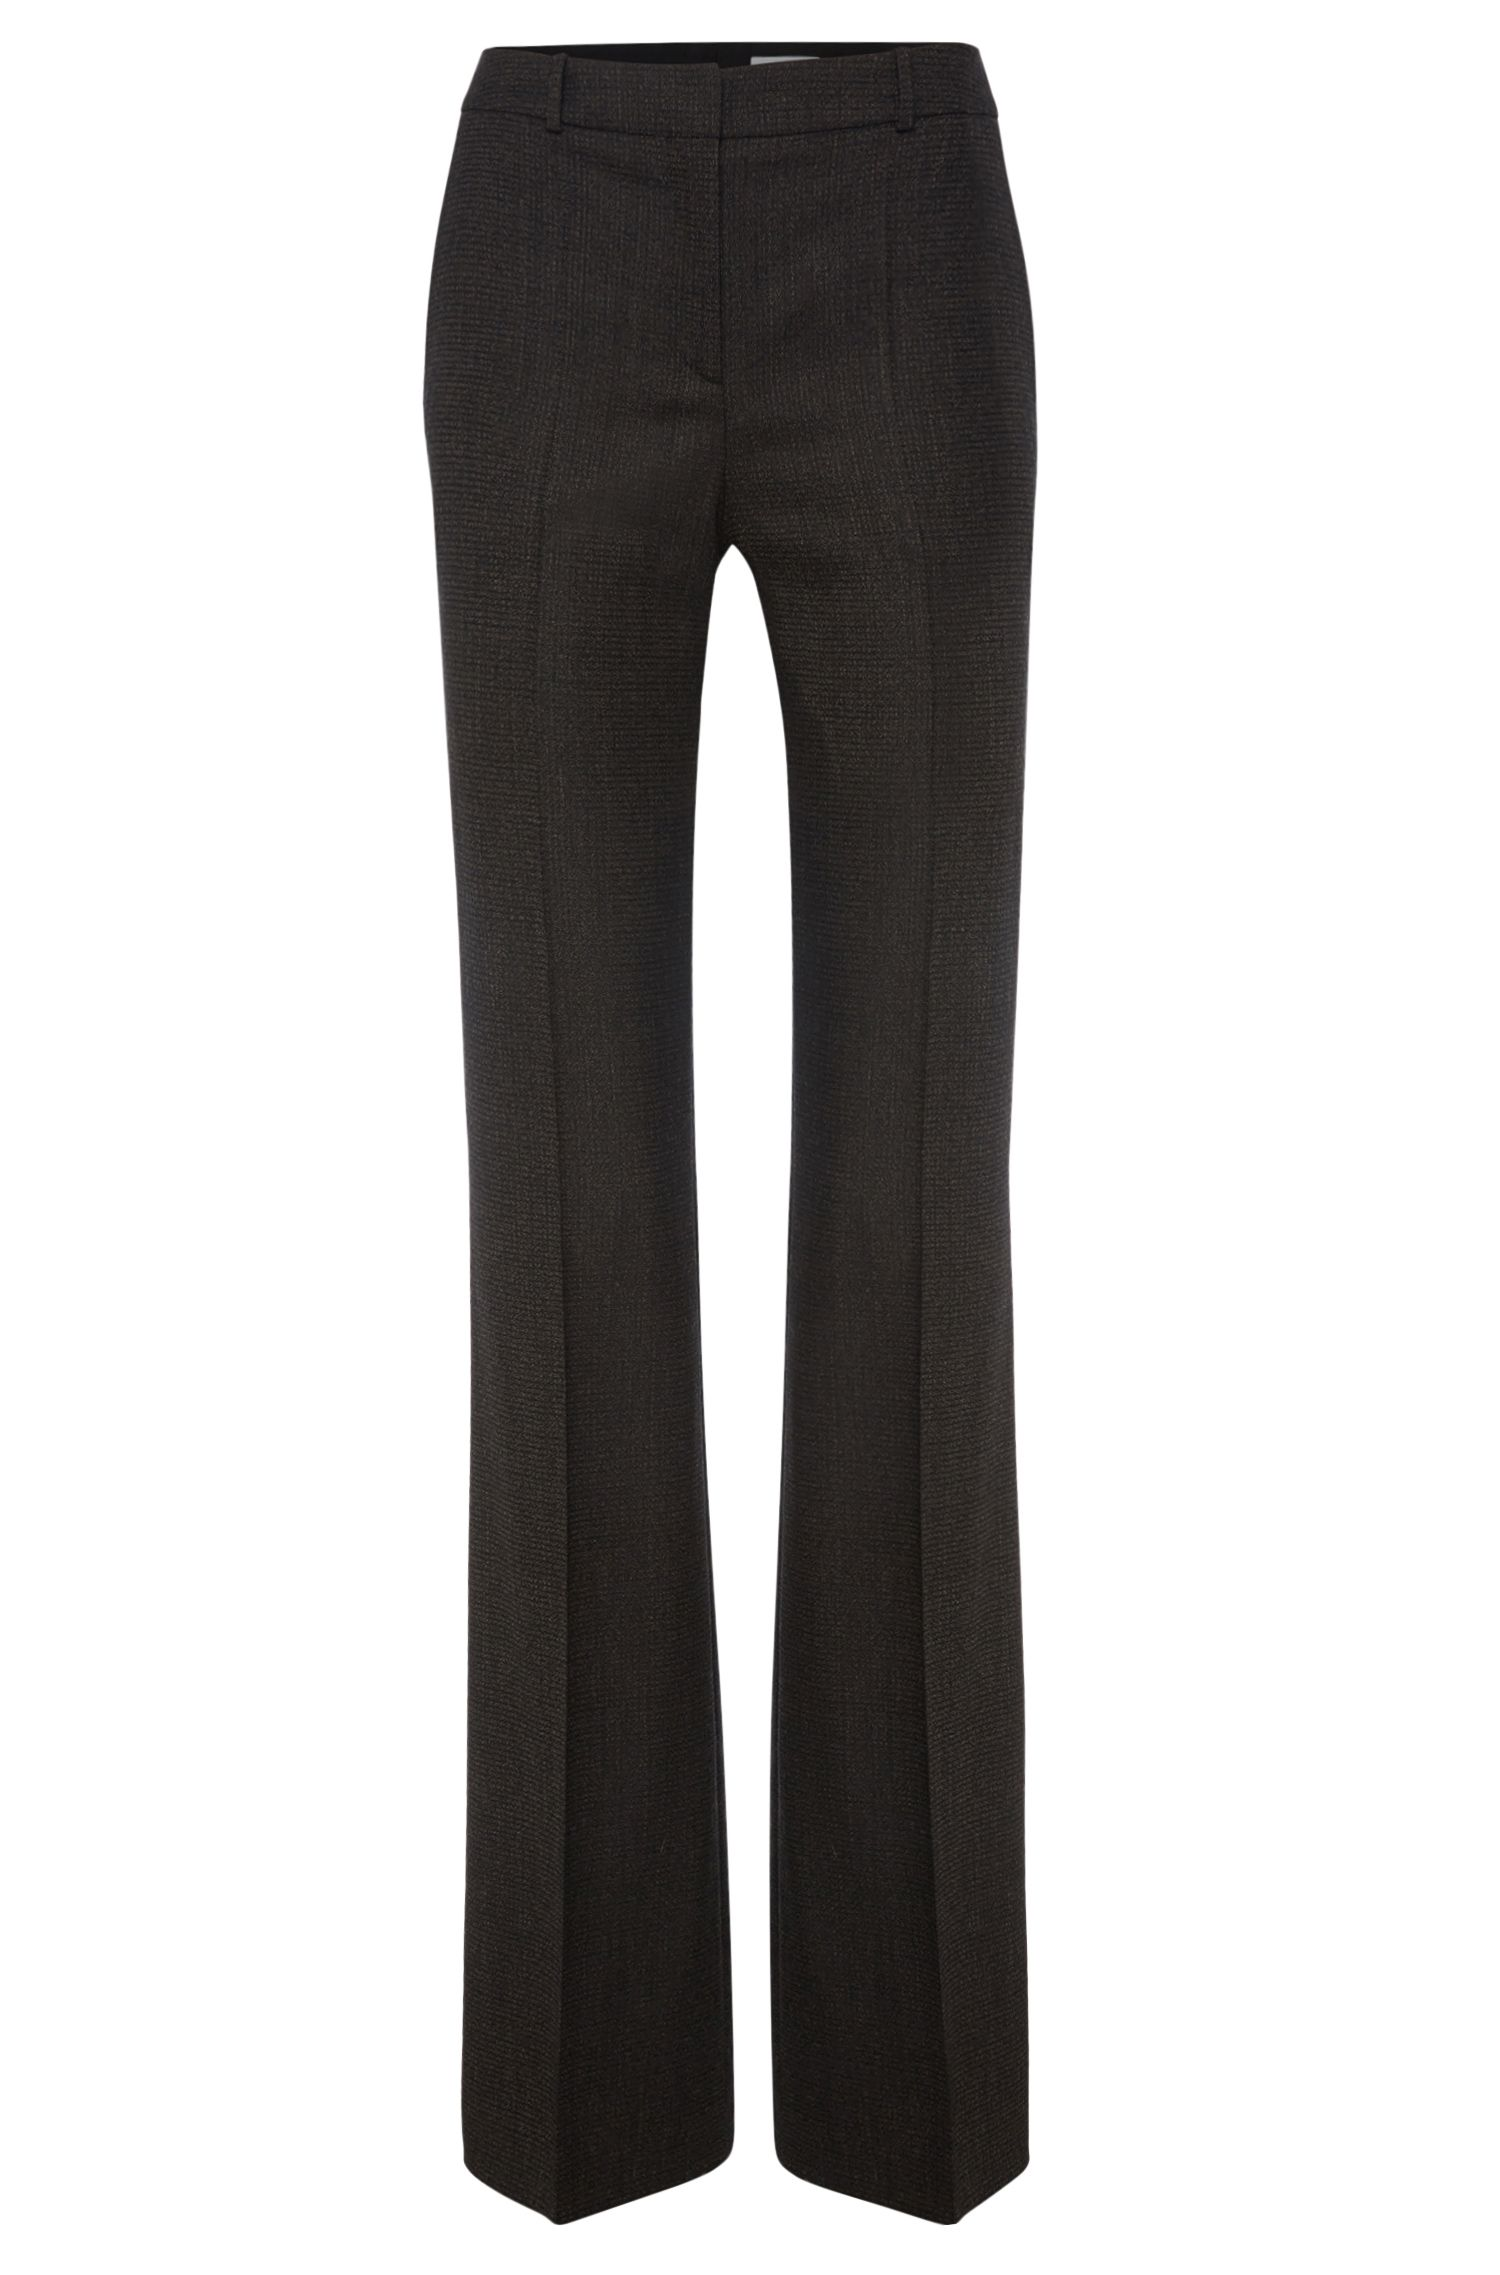 'Tusini' | Stretch Virgin Wool Tweed Dress Pants